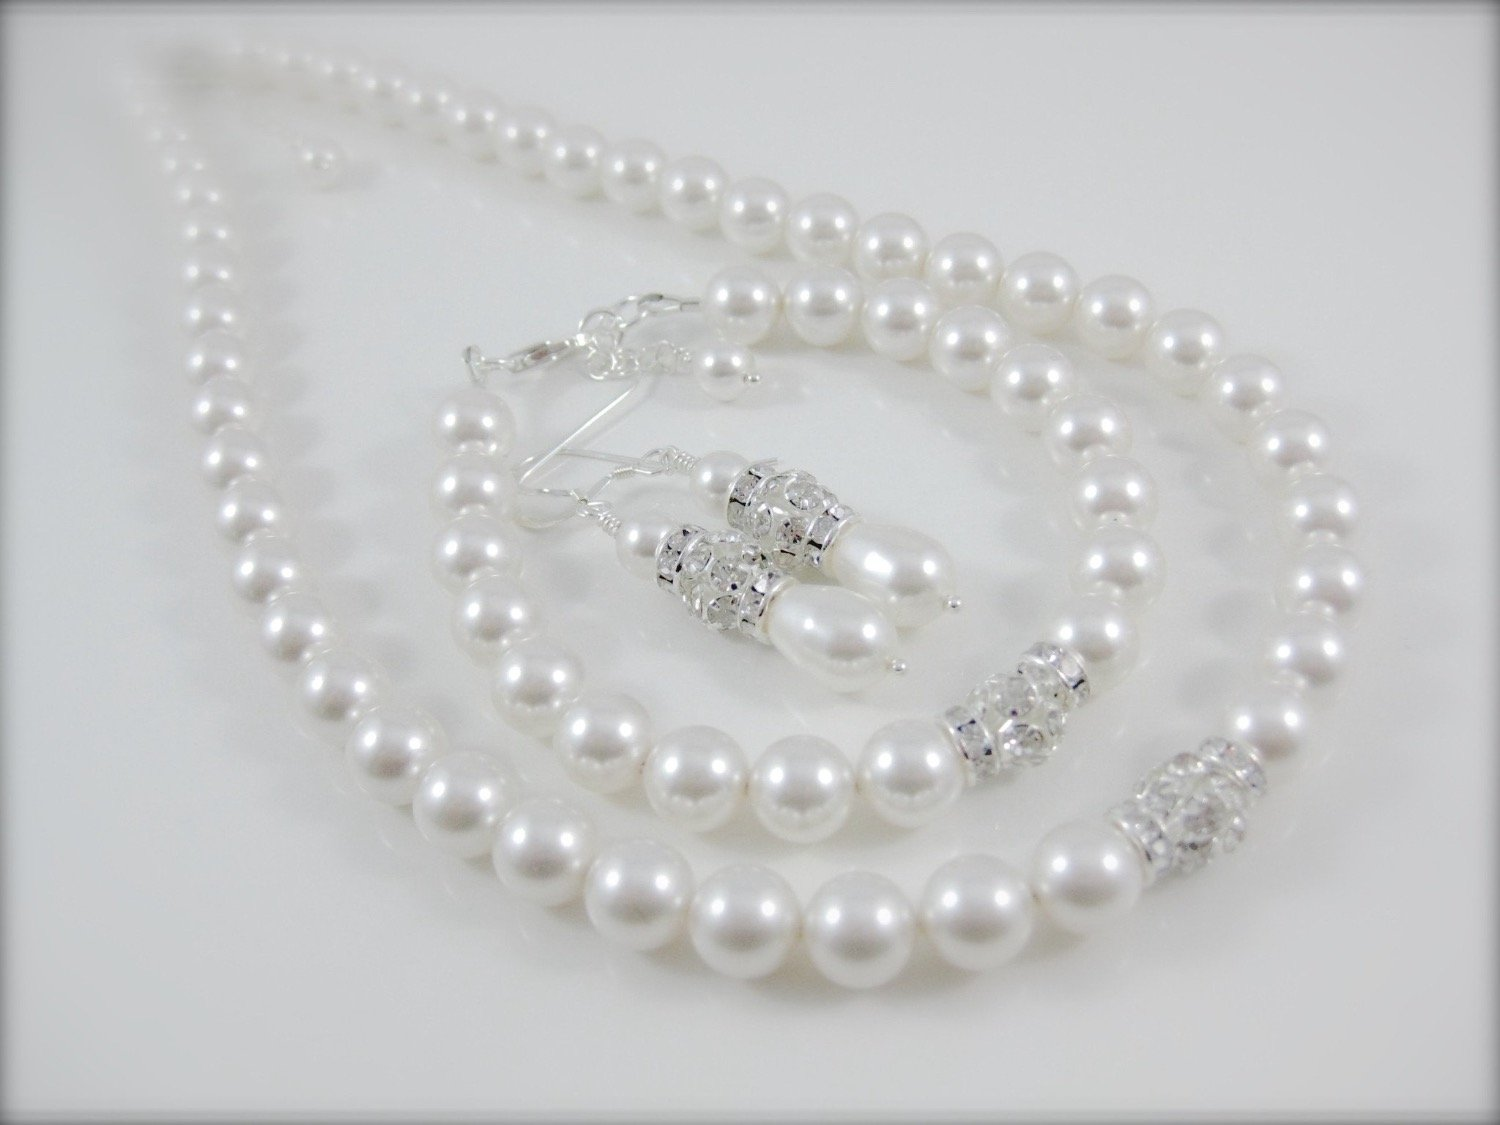 pearl necklace, bracelet and earring set - Clairesbridal - 1